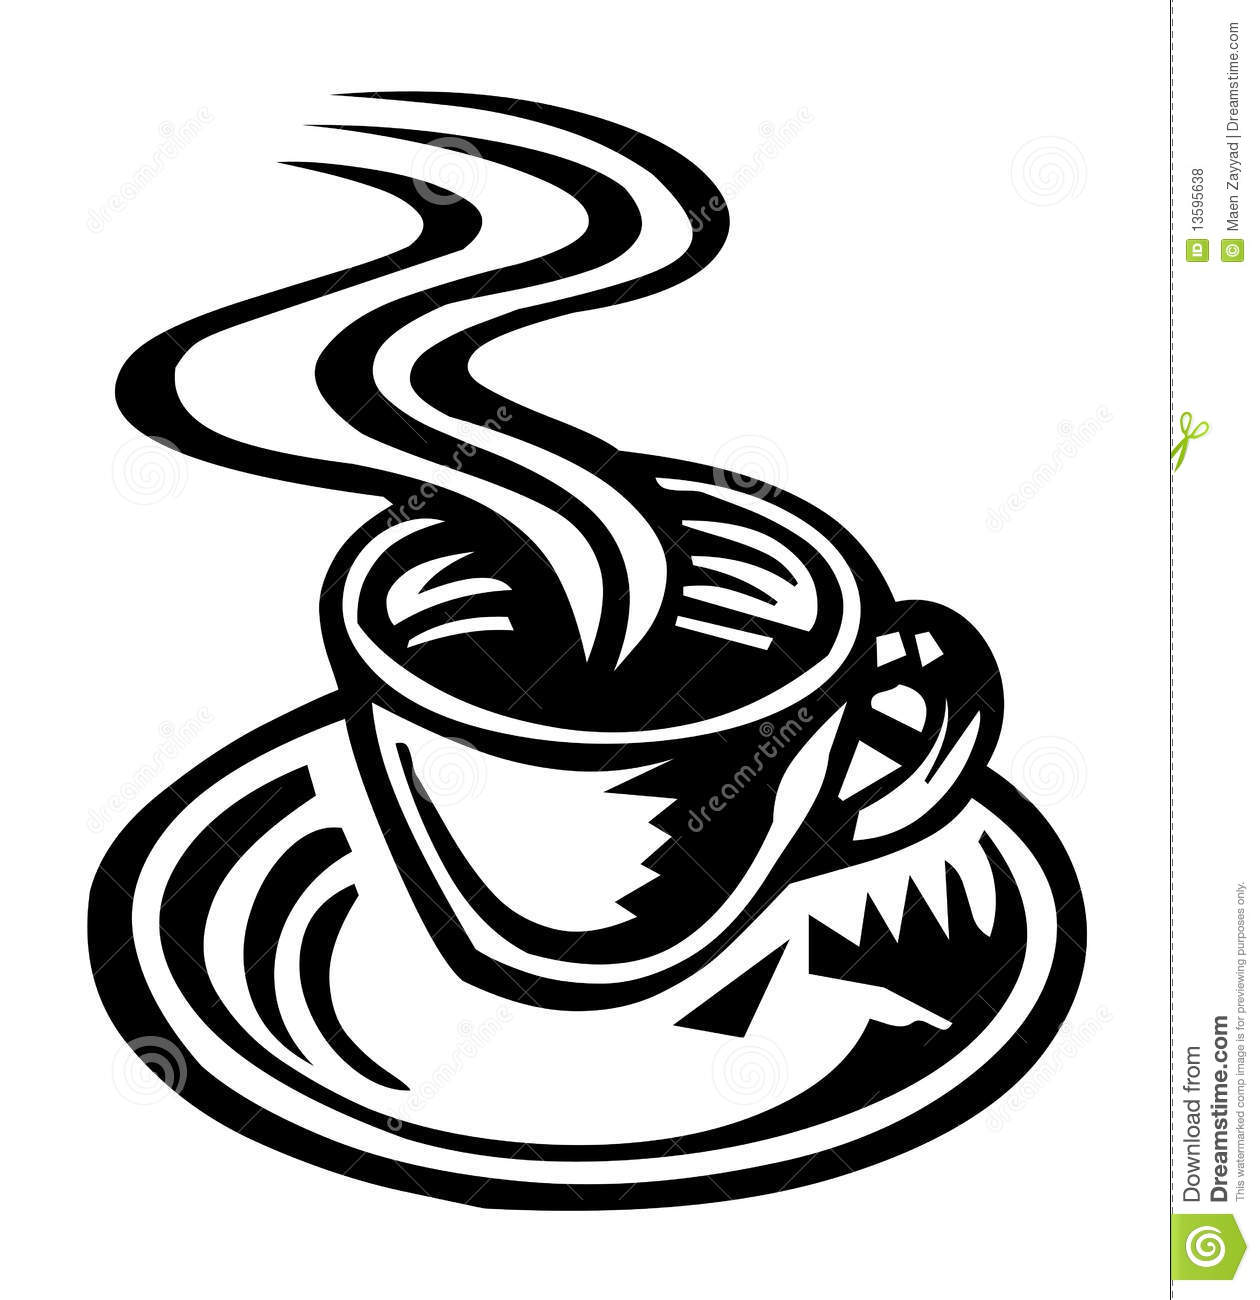 Coffee Cup Royalty Free Stock Photos - Image: 13595638